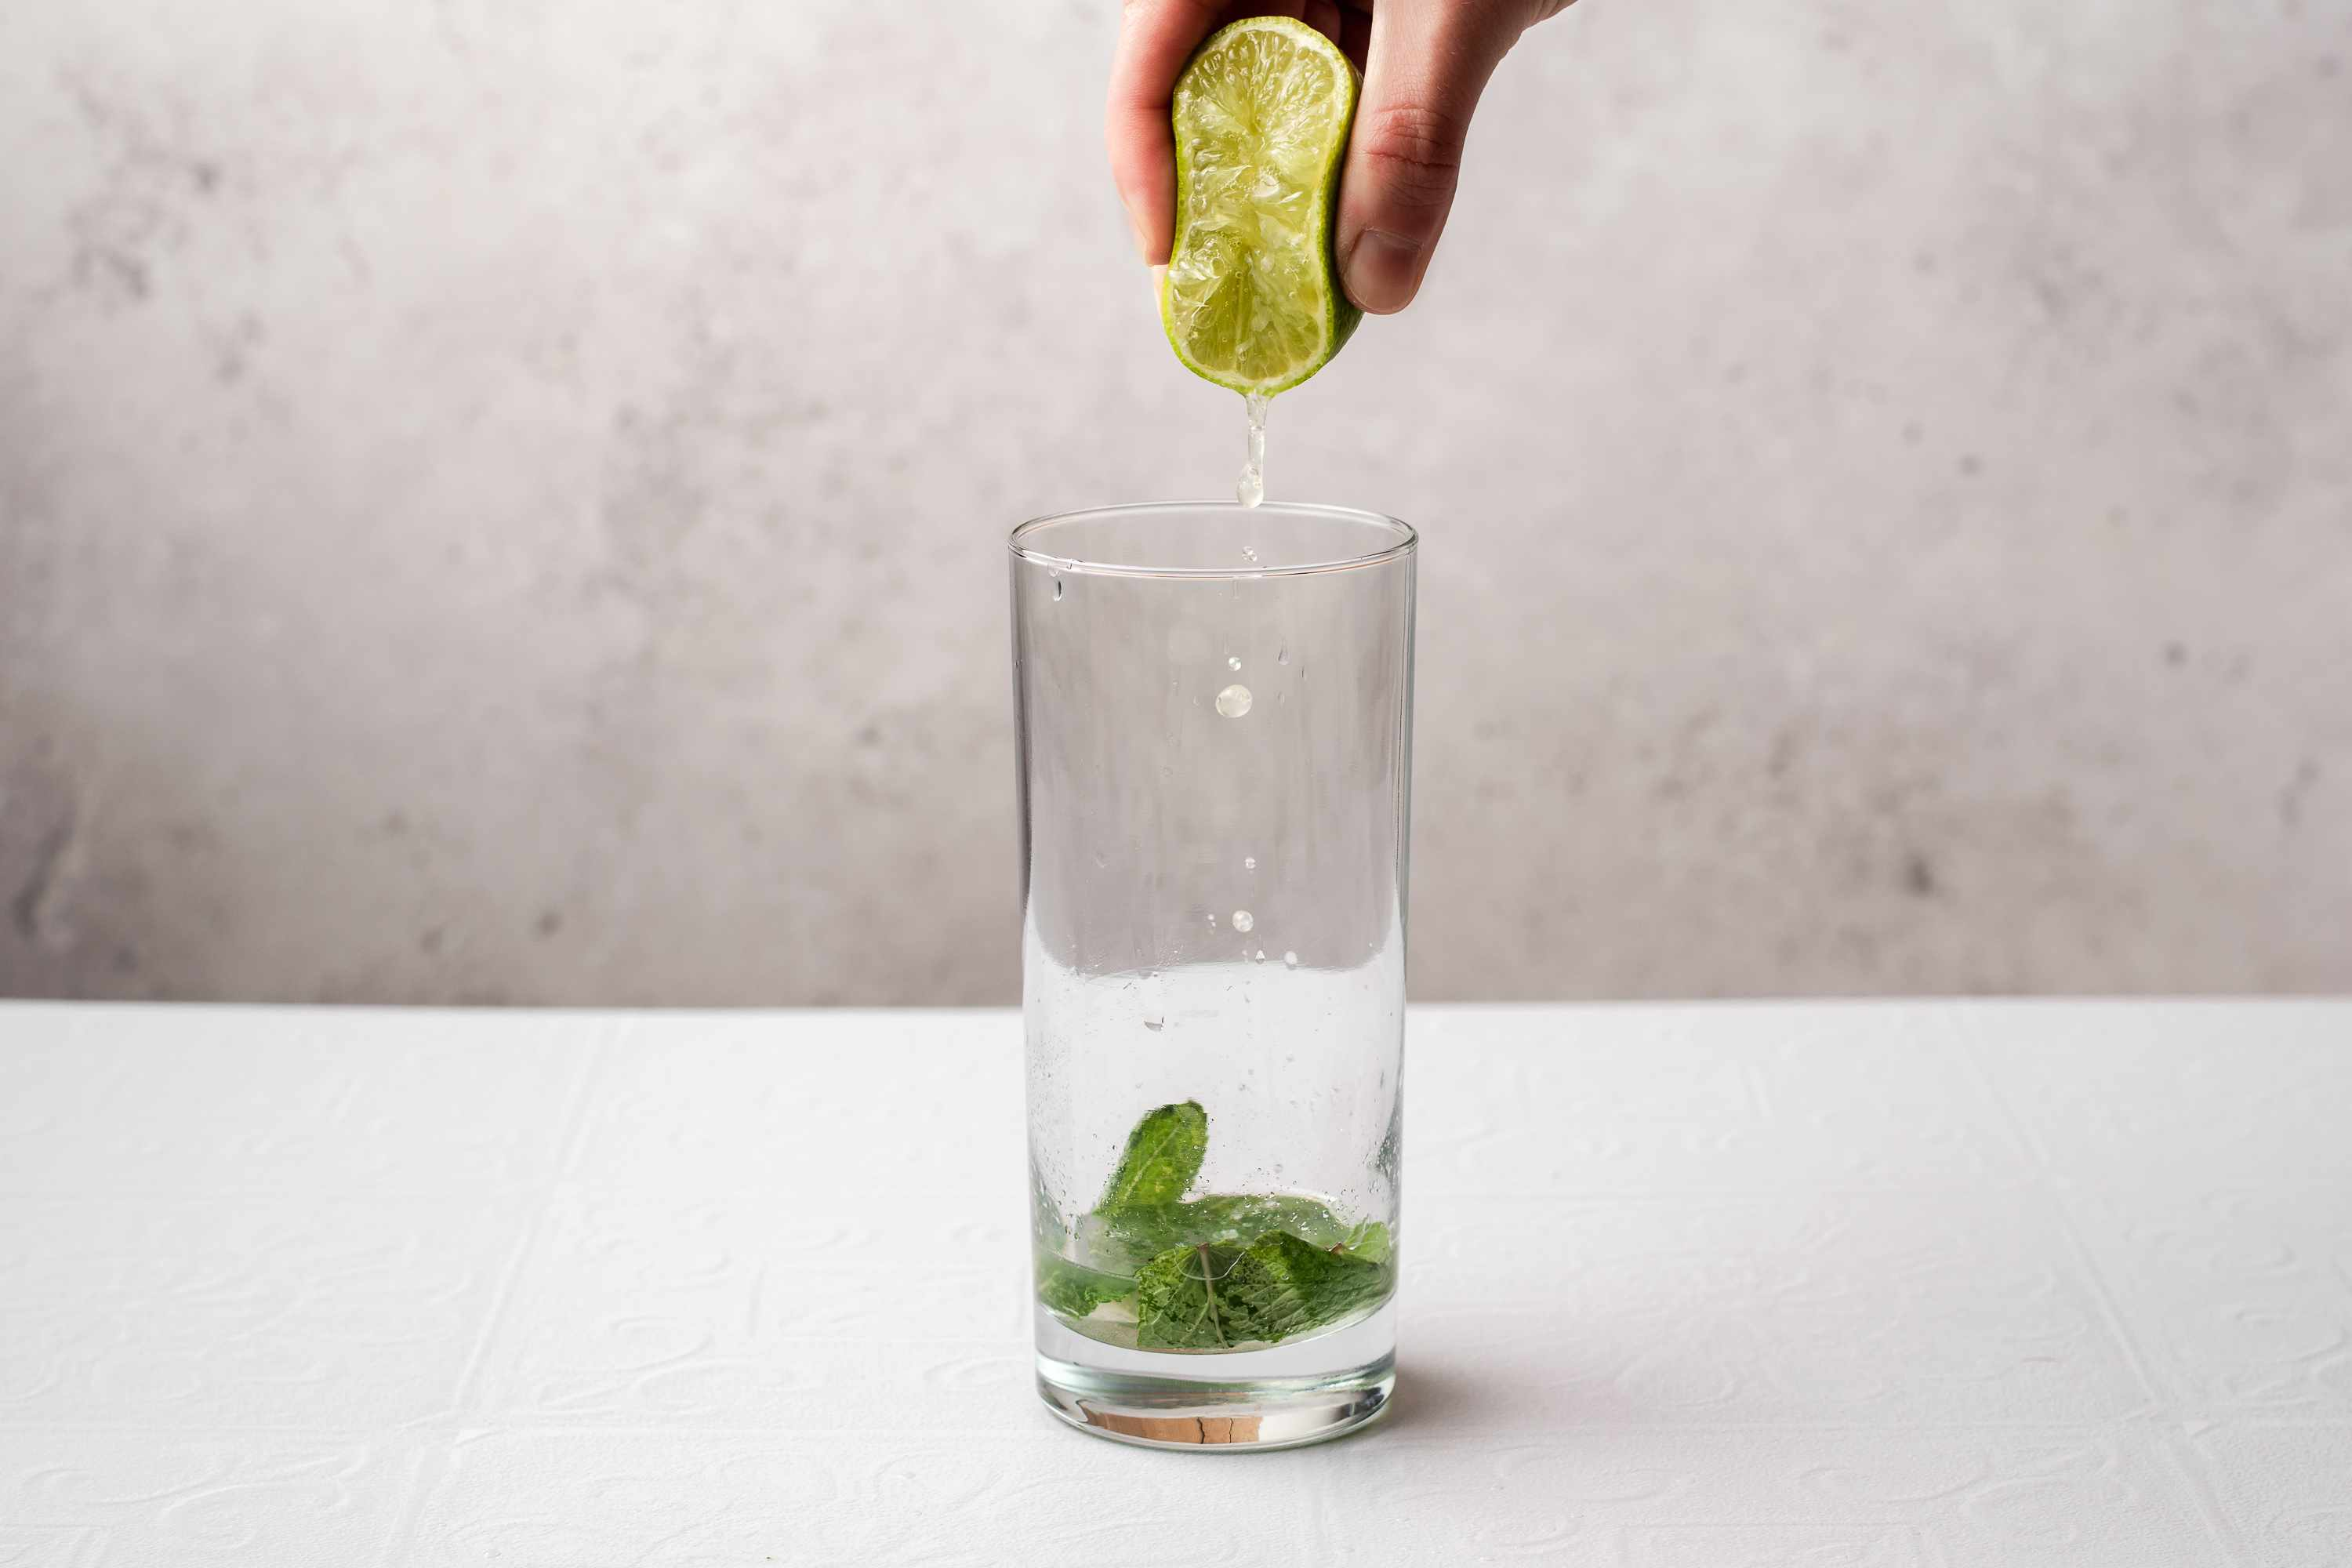 squeeze lime into the glass with the mint